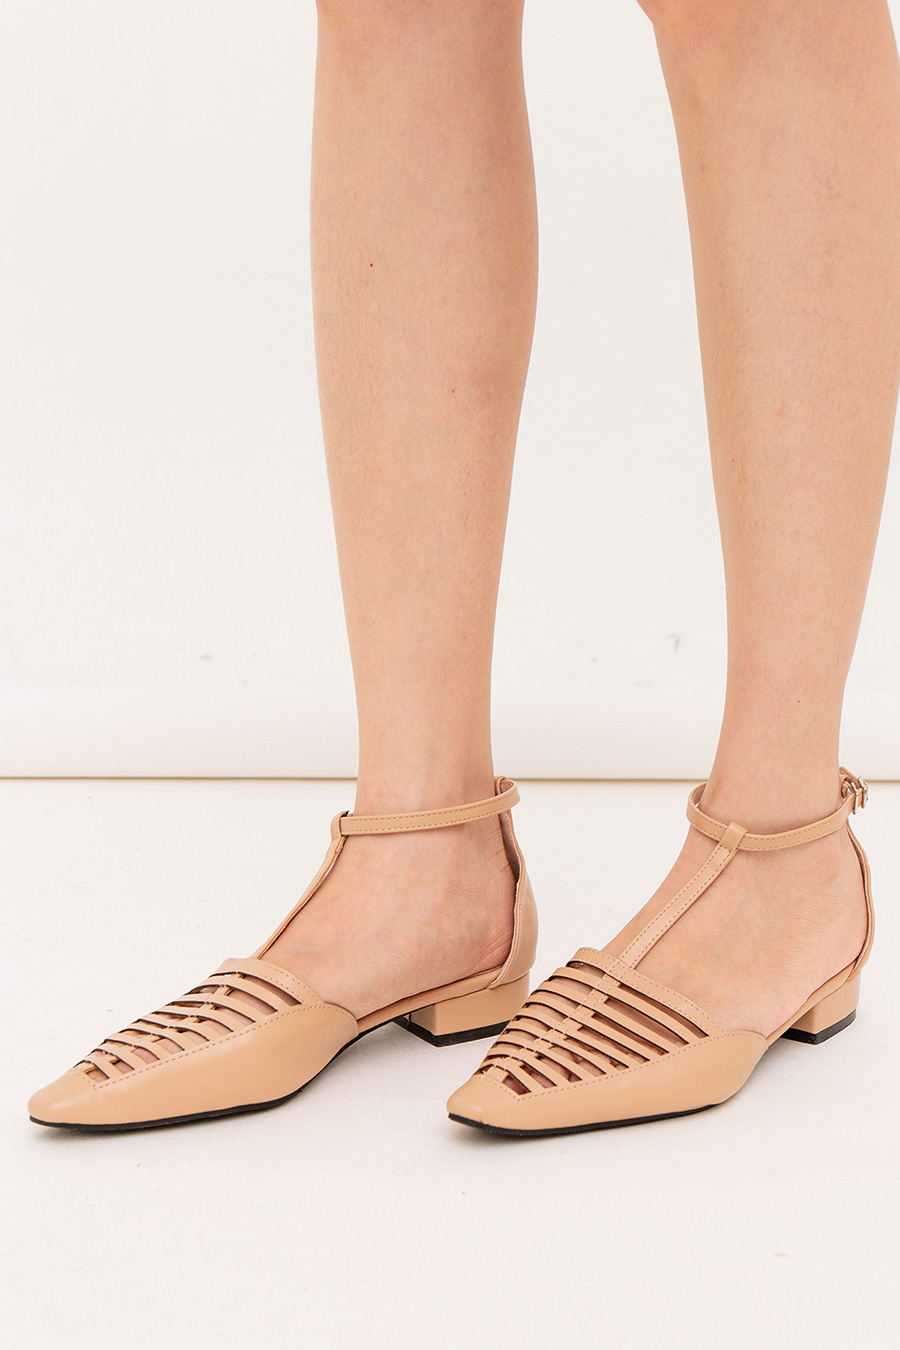 *SALE* FRANCISQUE SHOES - NUDE